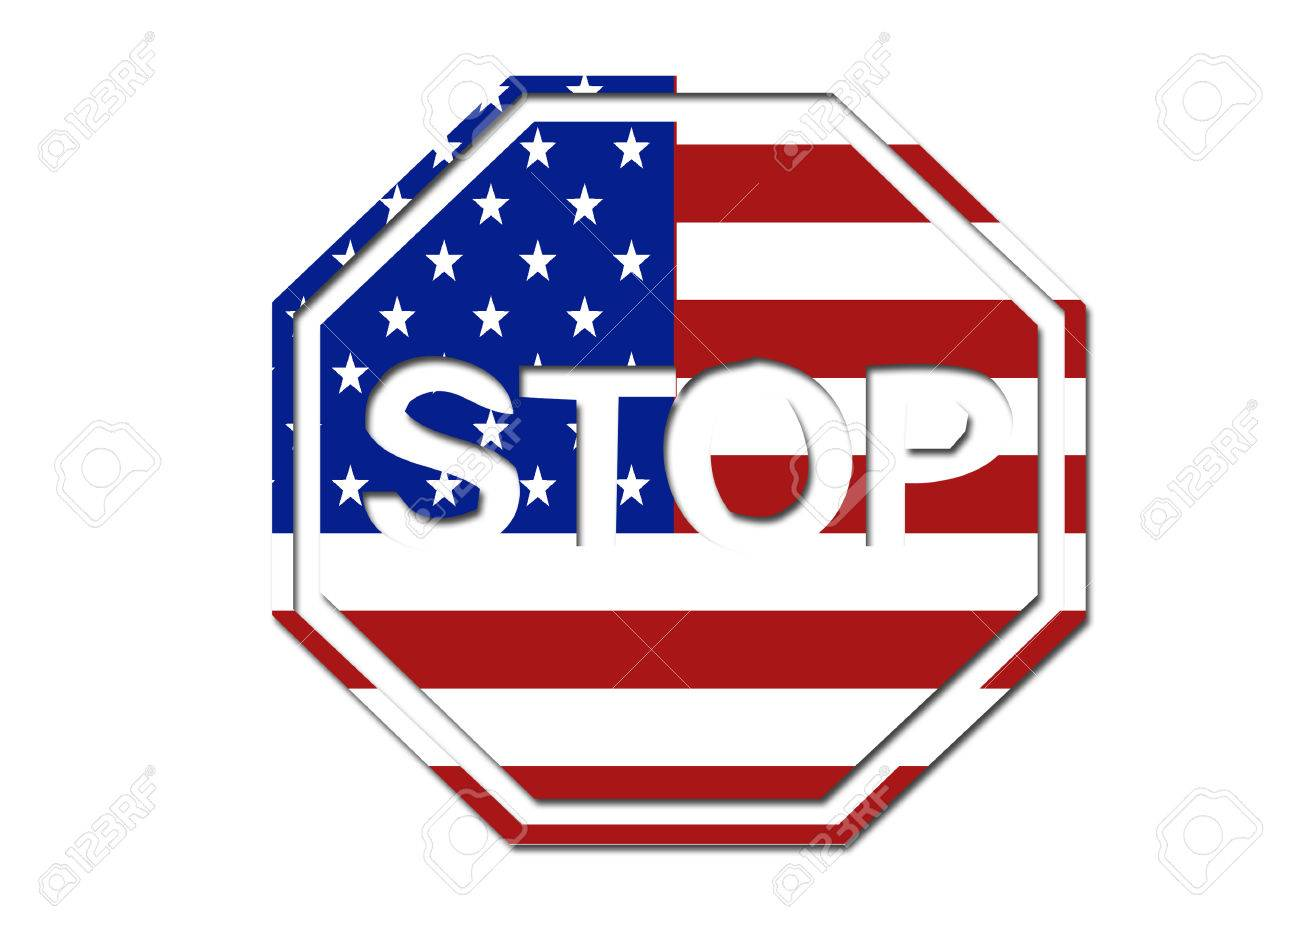 us flag stop sign symbol logo on a solid background stock photo rh 123rf com stop sign look left look right look left stop sign logo design